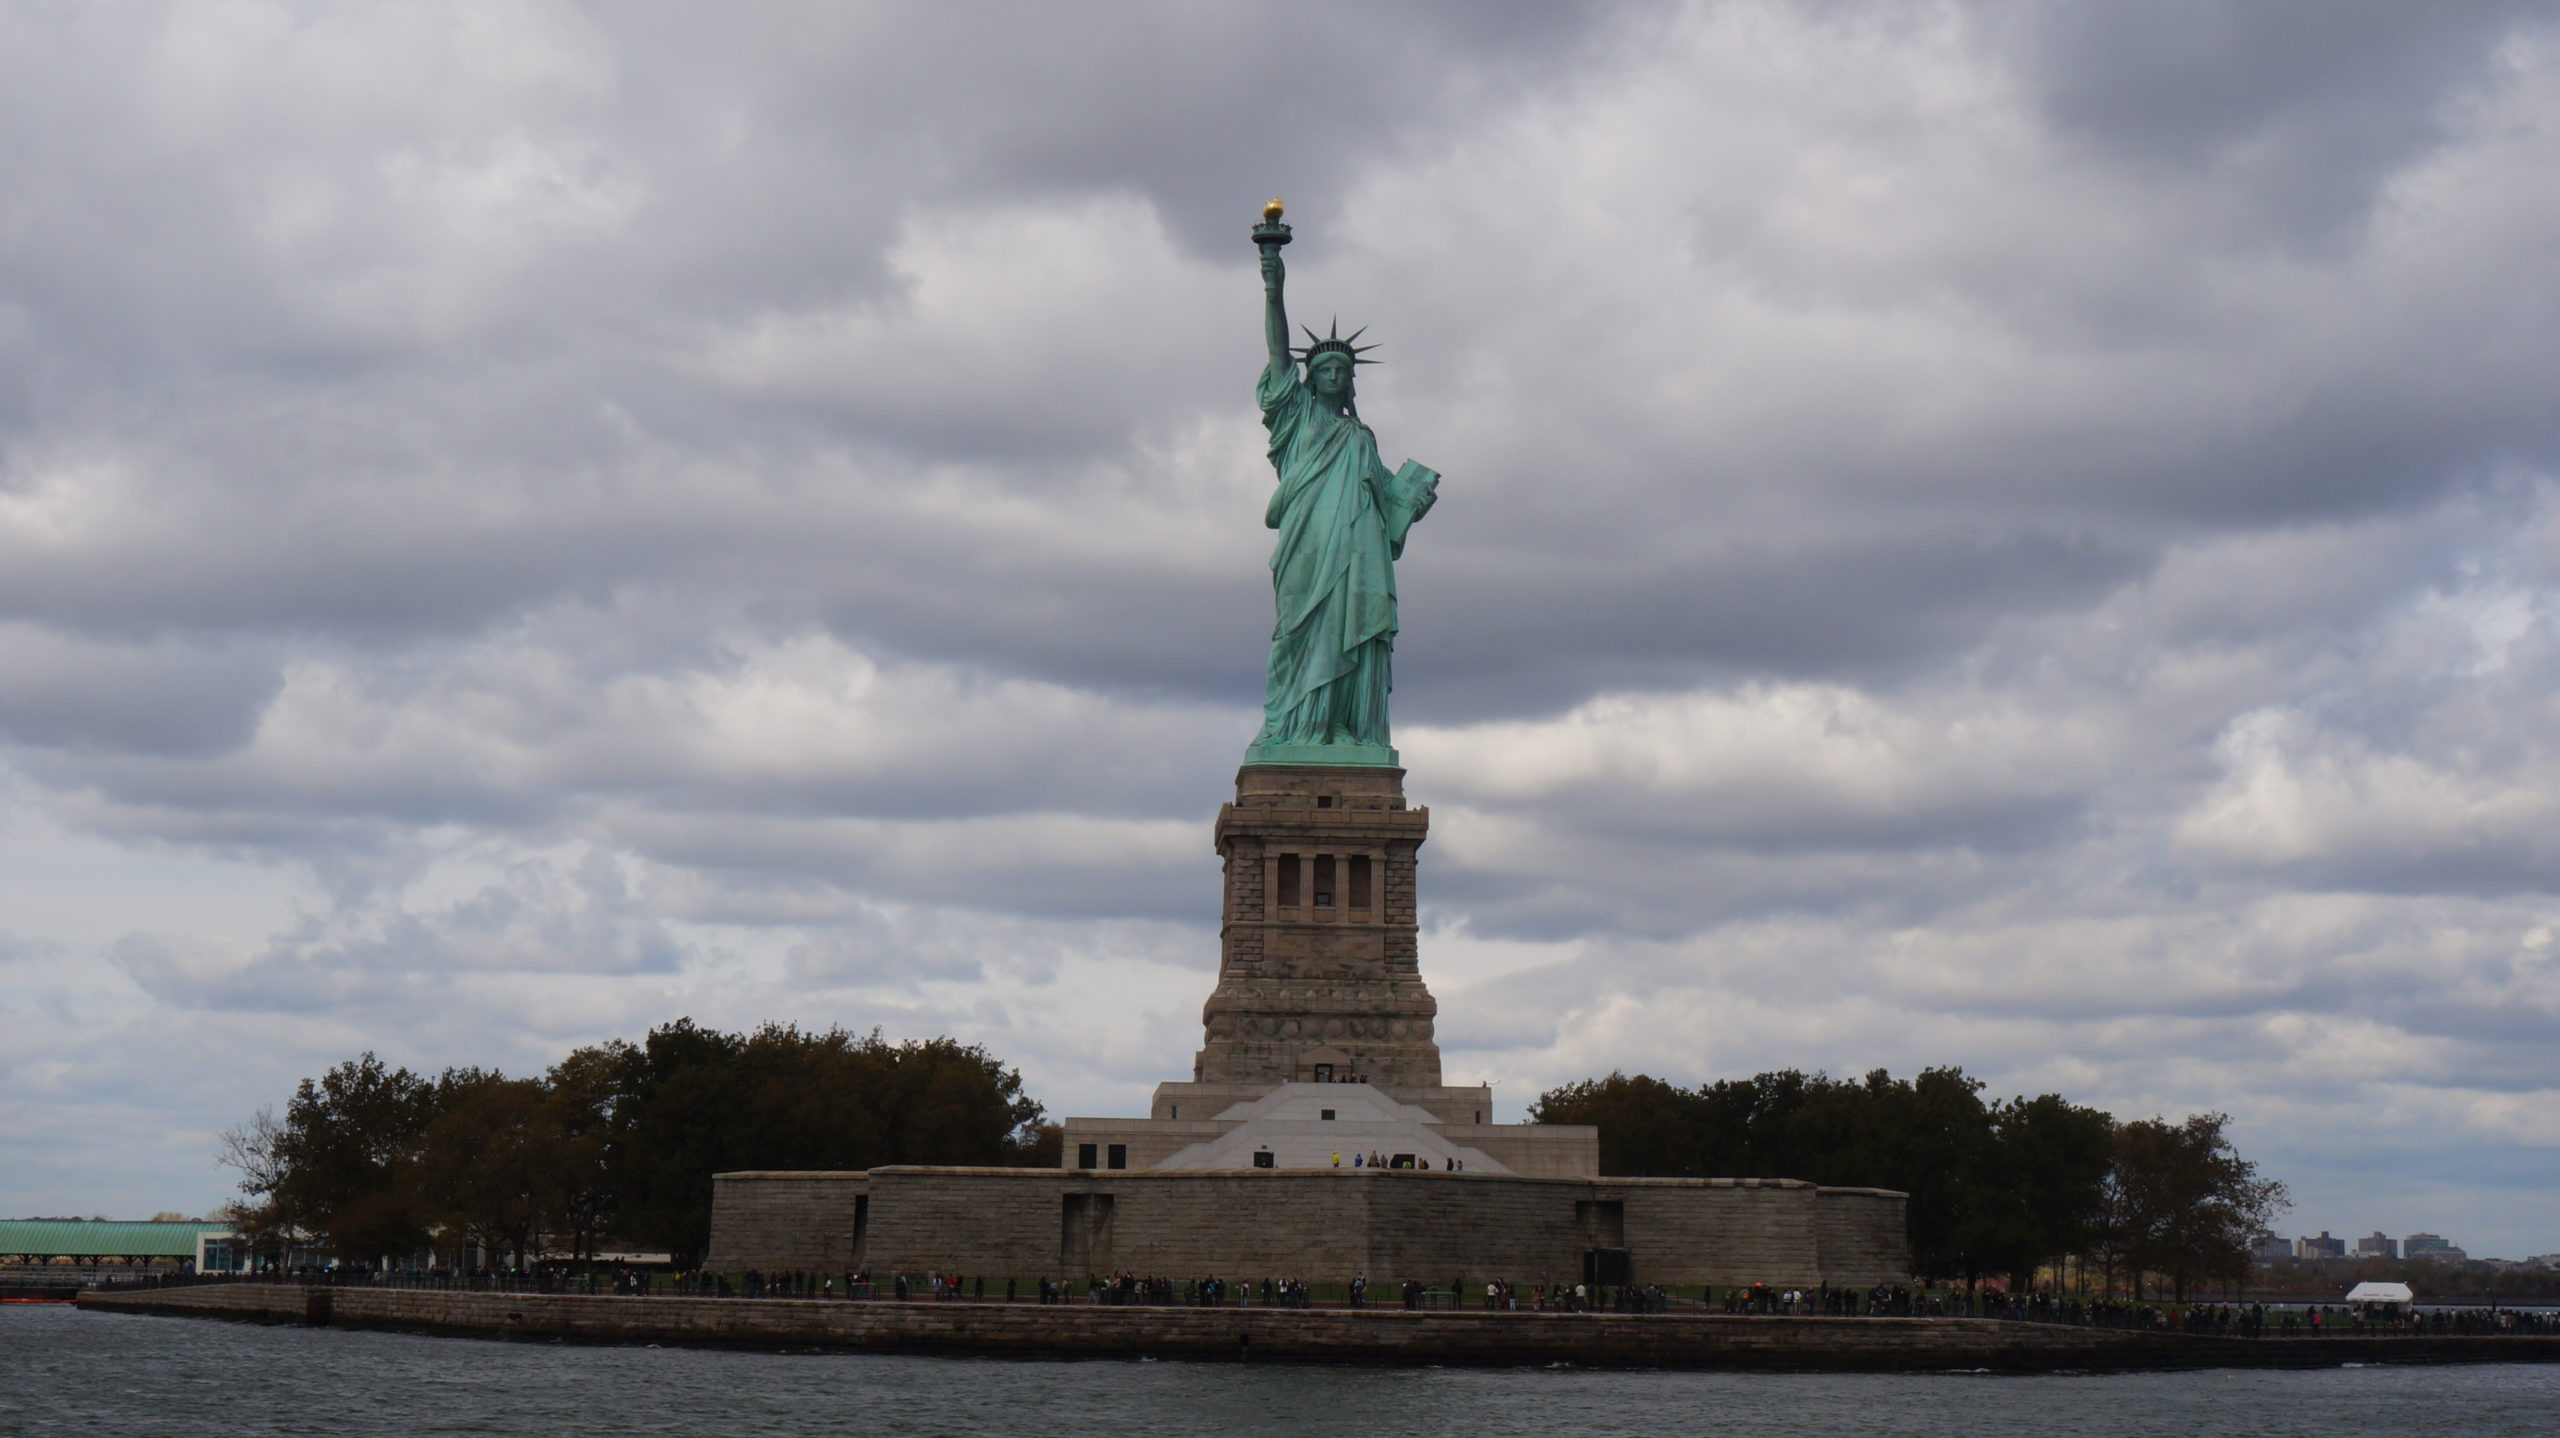 Statue of Liberty From The Hudson River Cruise